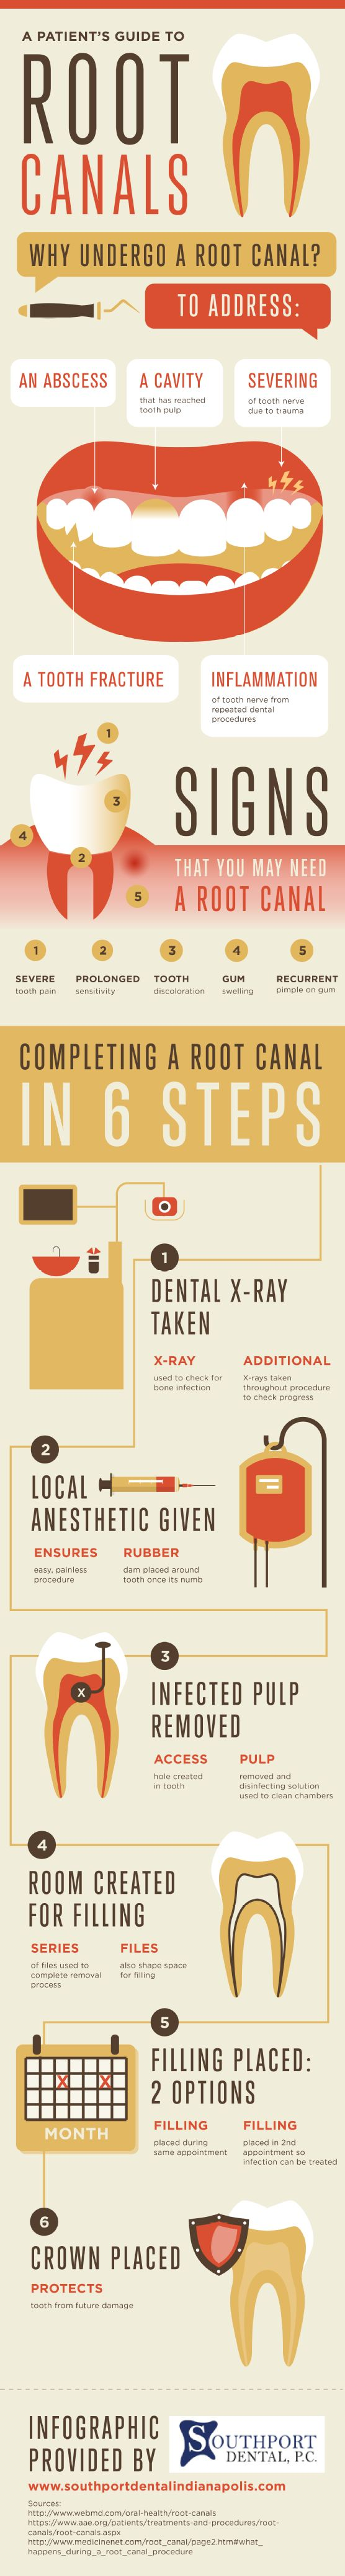 If a tooth's nerve is inflamed after repeated dental procedures, root canal treatment may be necessary to provide relief. Get more details about root canal treatment by clicking over to this infographic from a http://bayareaimplantdentistry.com/